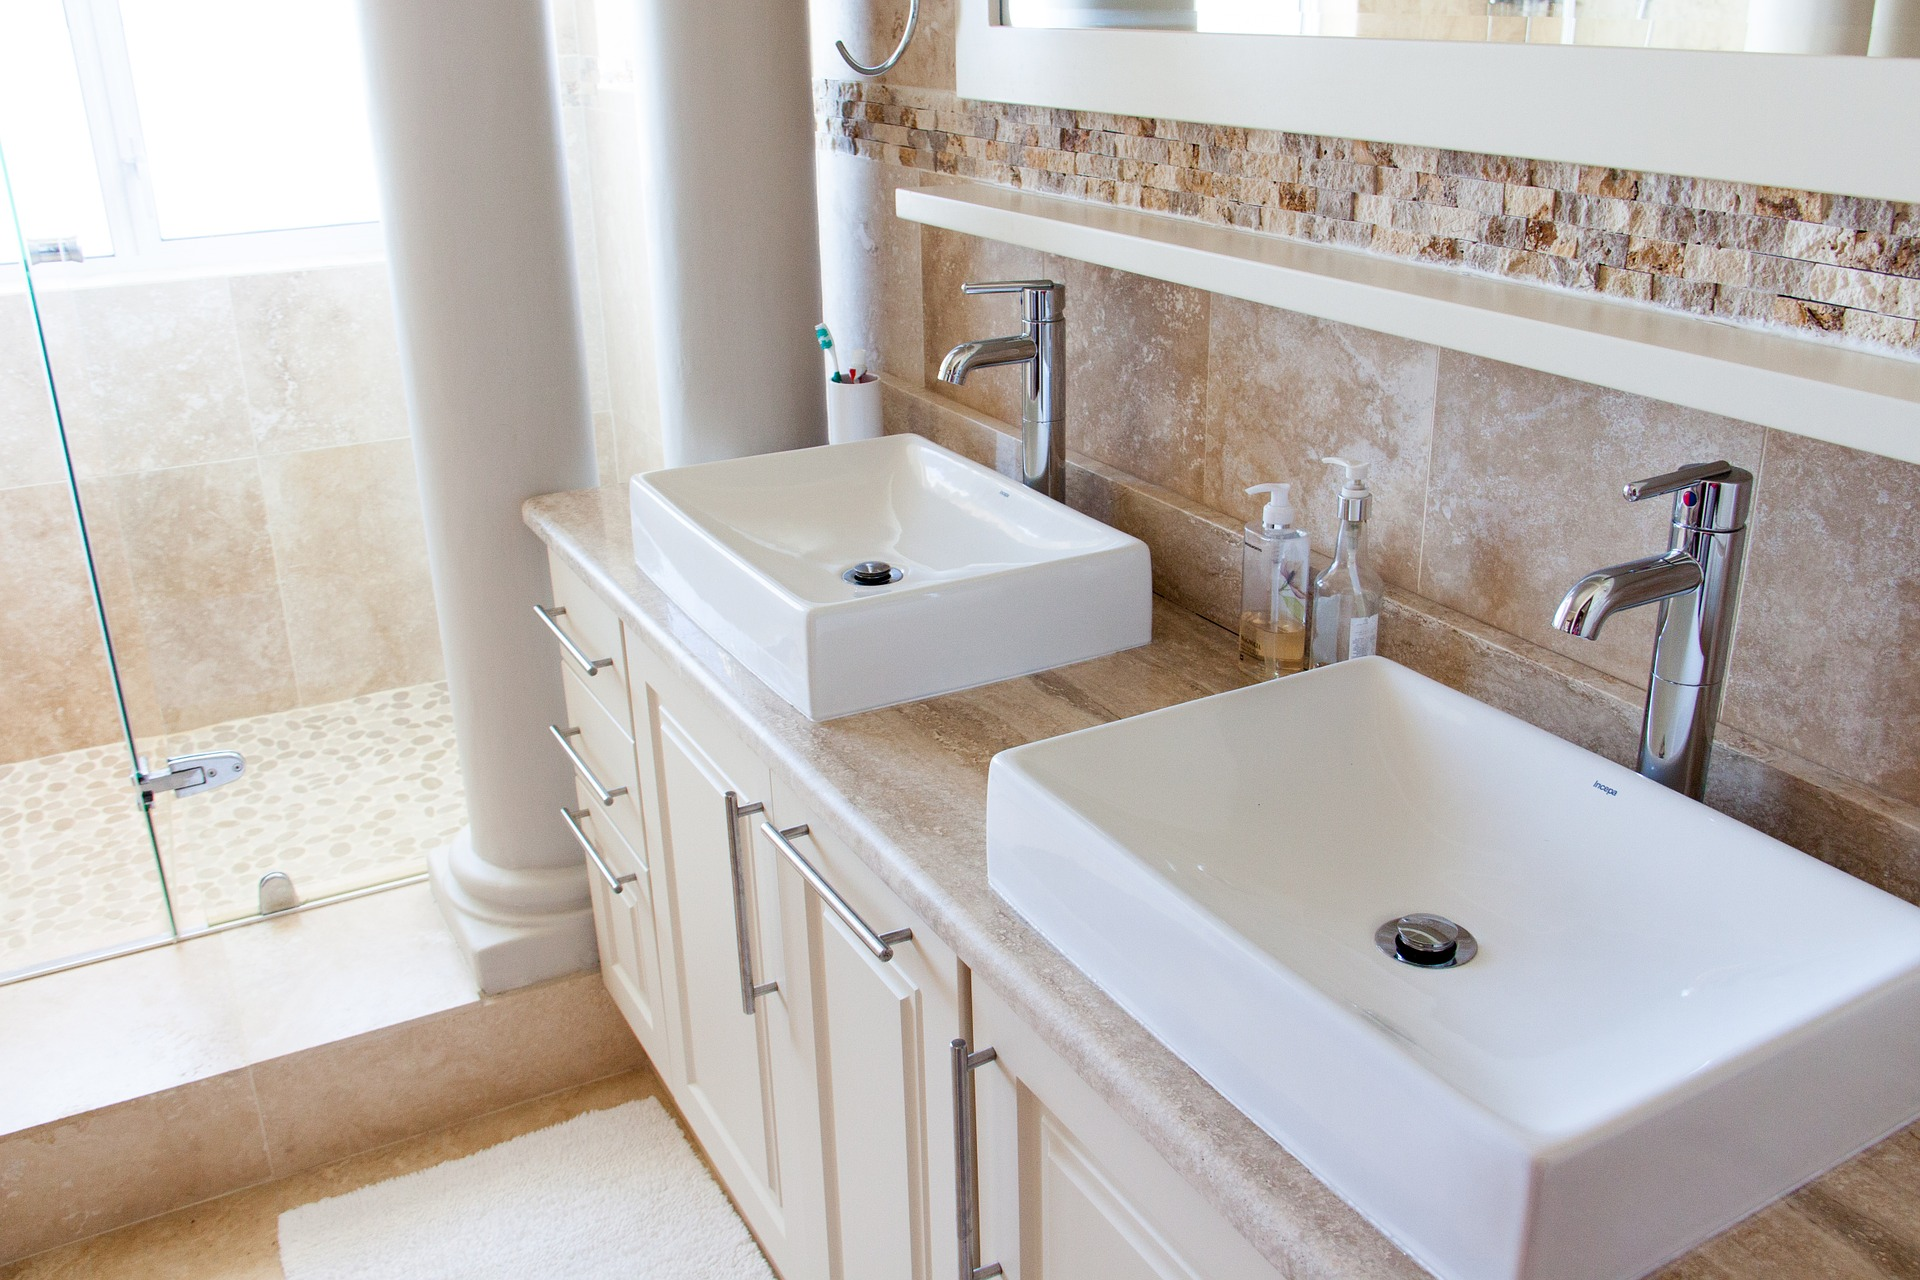 11 Simple Additions to Enhance Your Bathroom Space